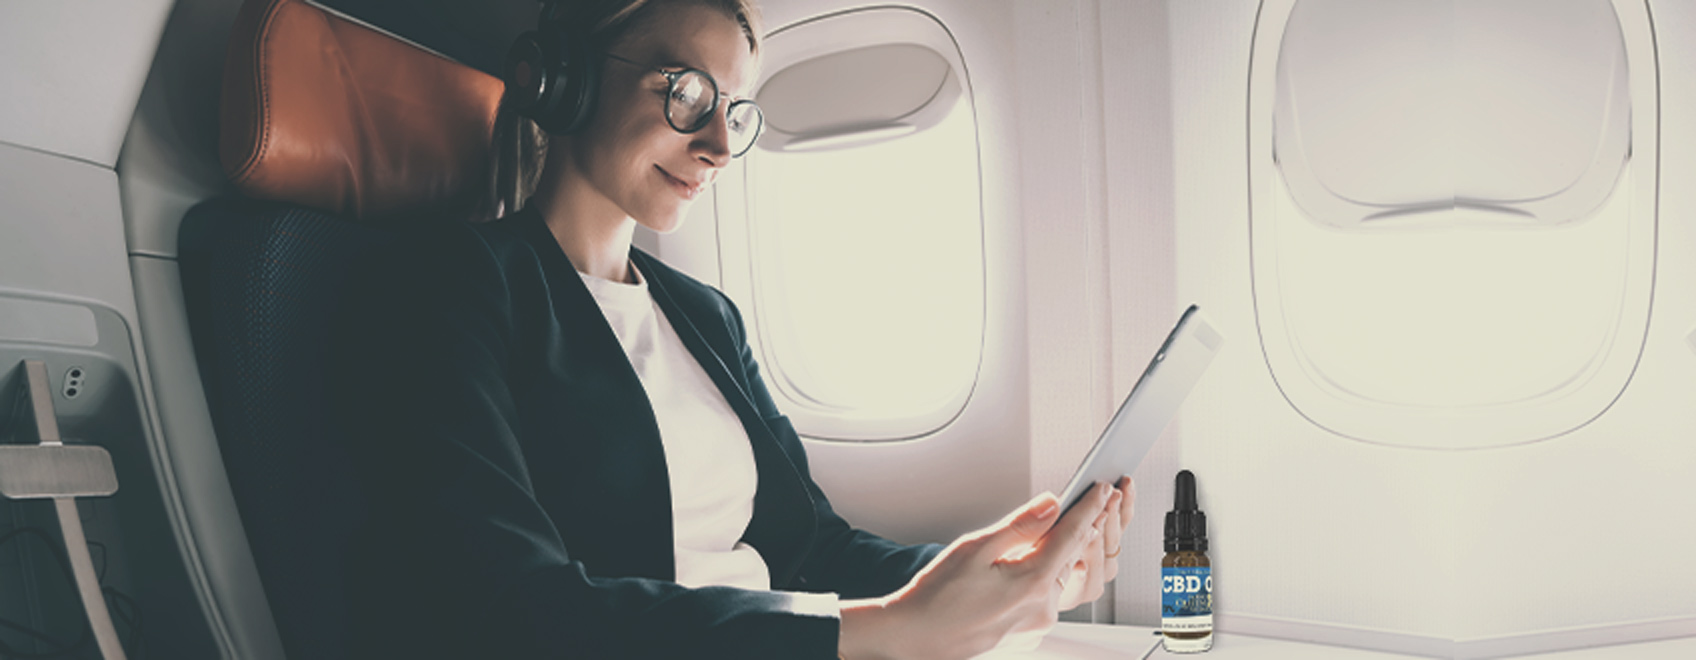 REASONS FOR FLYING WITH CBD